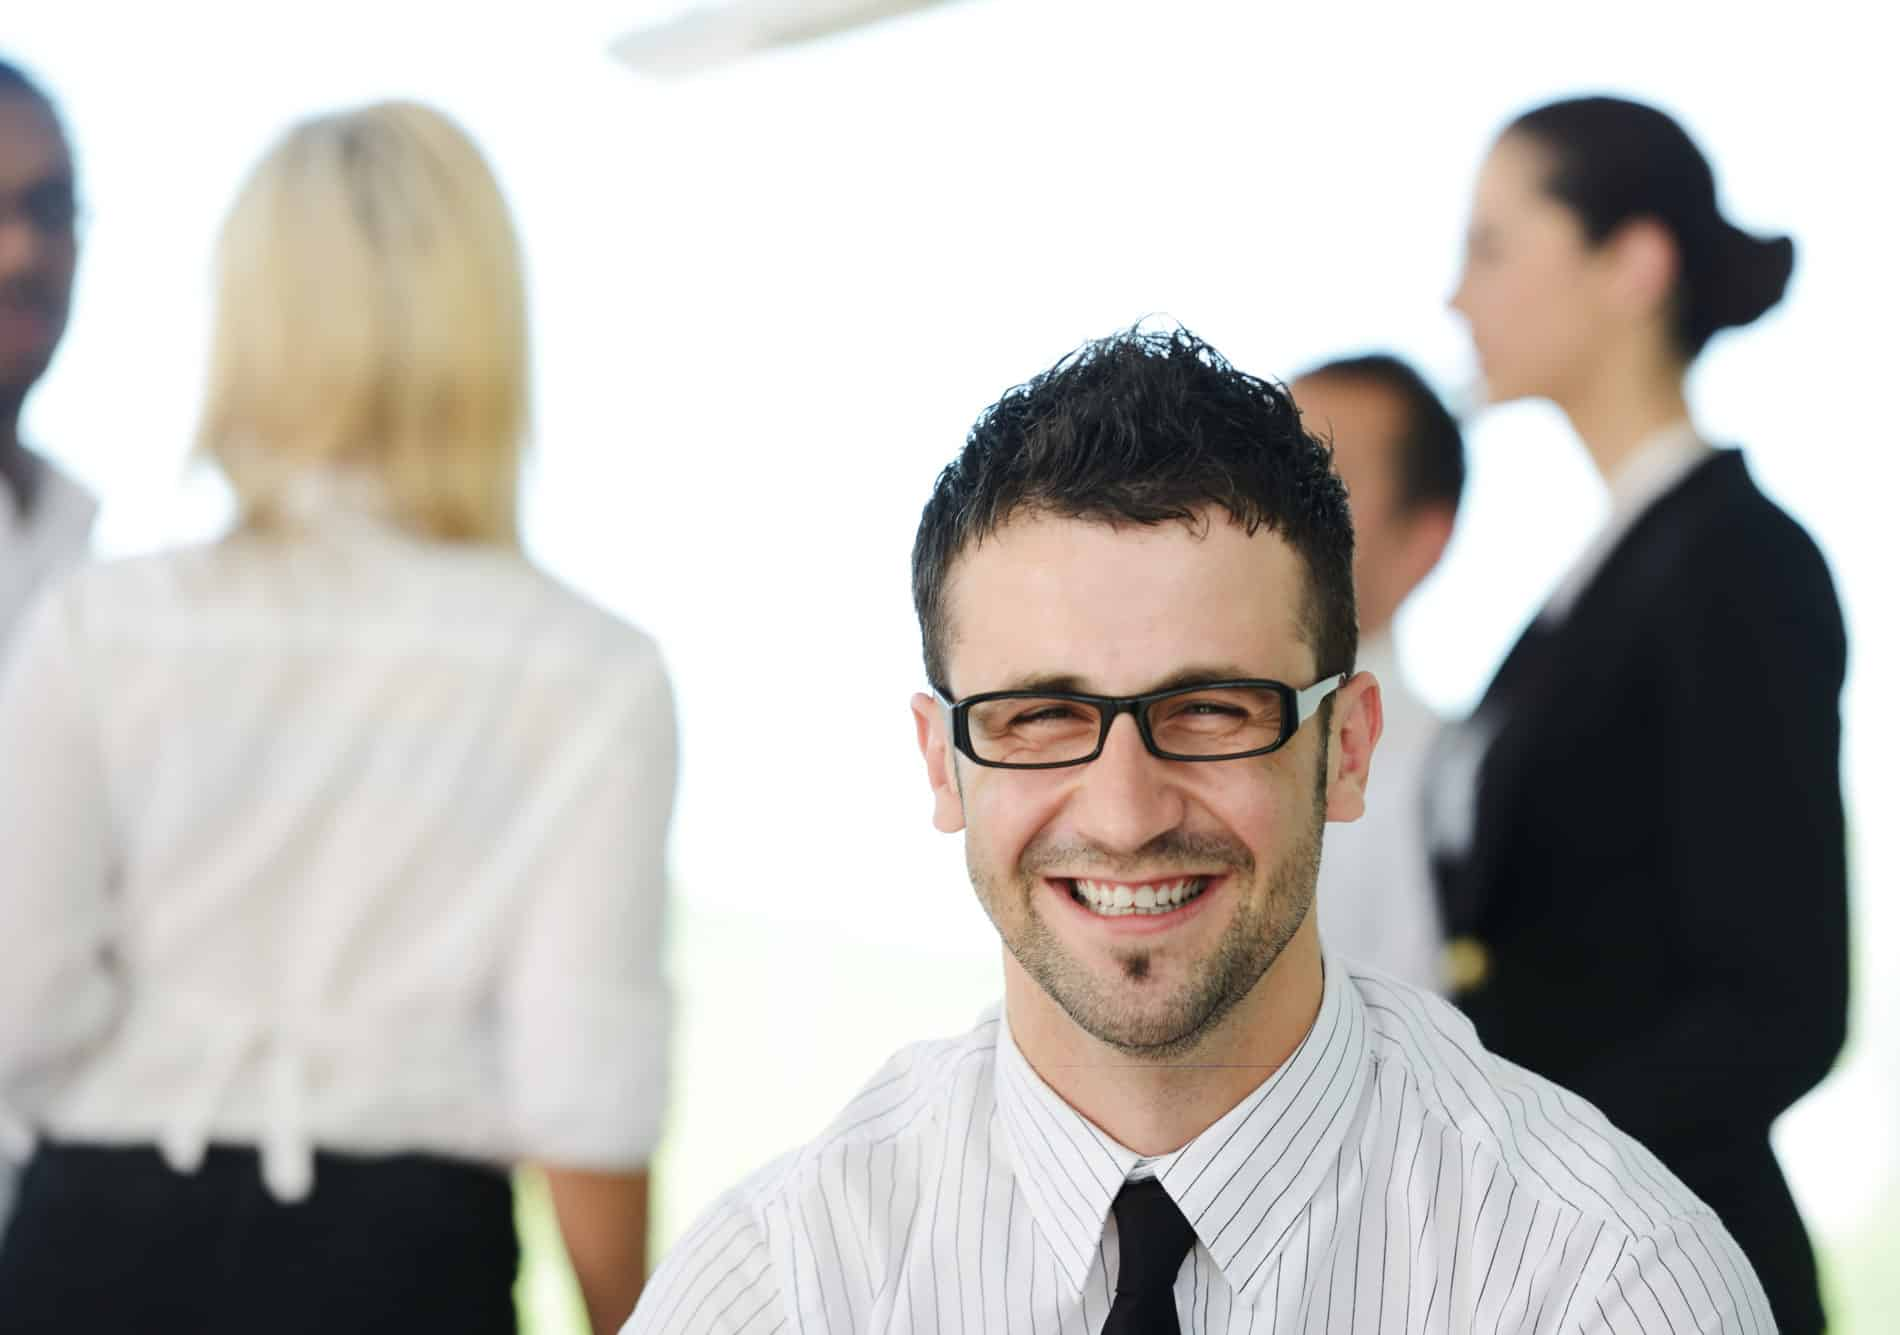 successful business people at office BK 960pVs e1557879585546